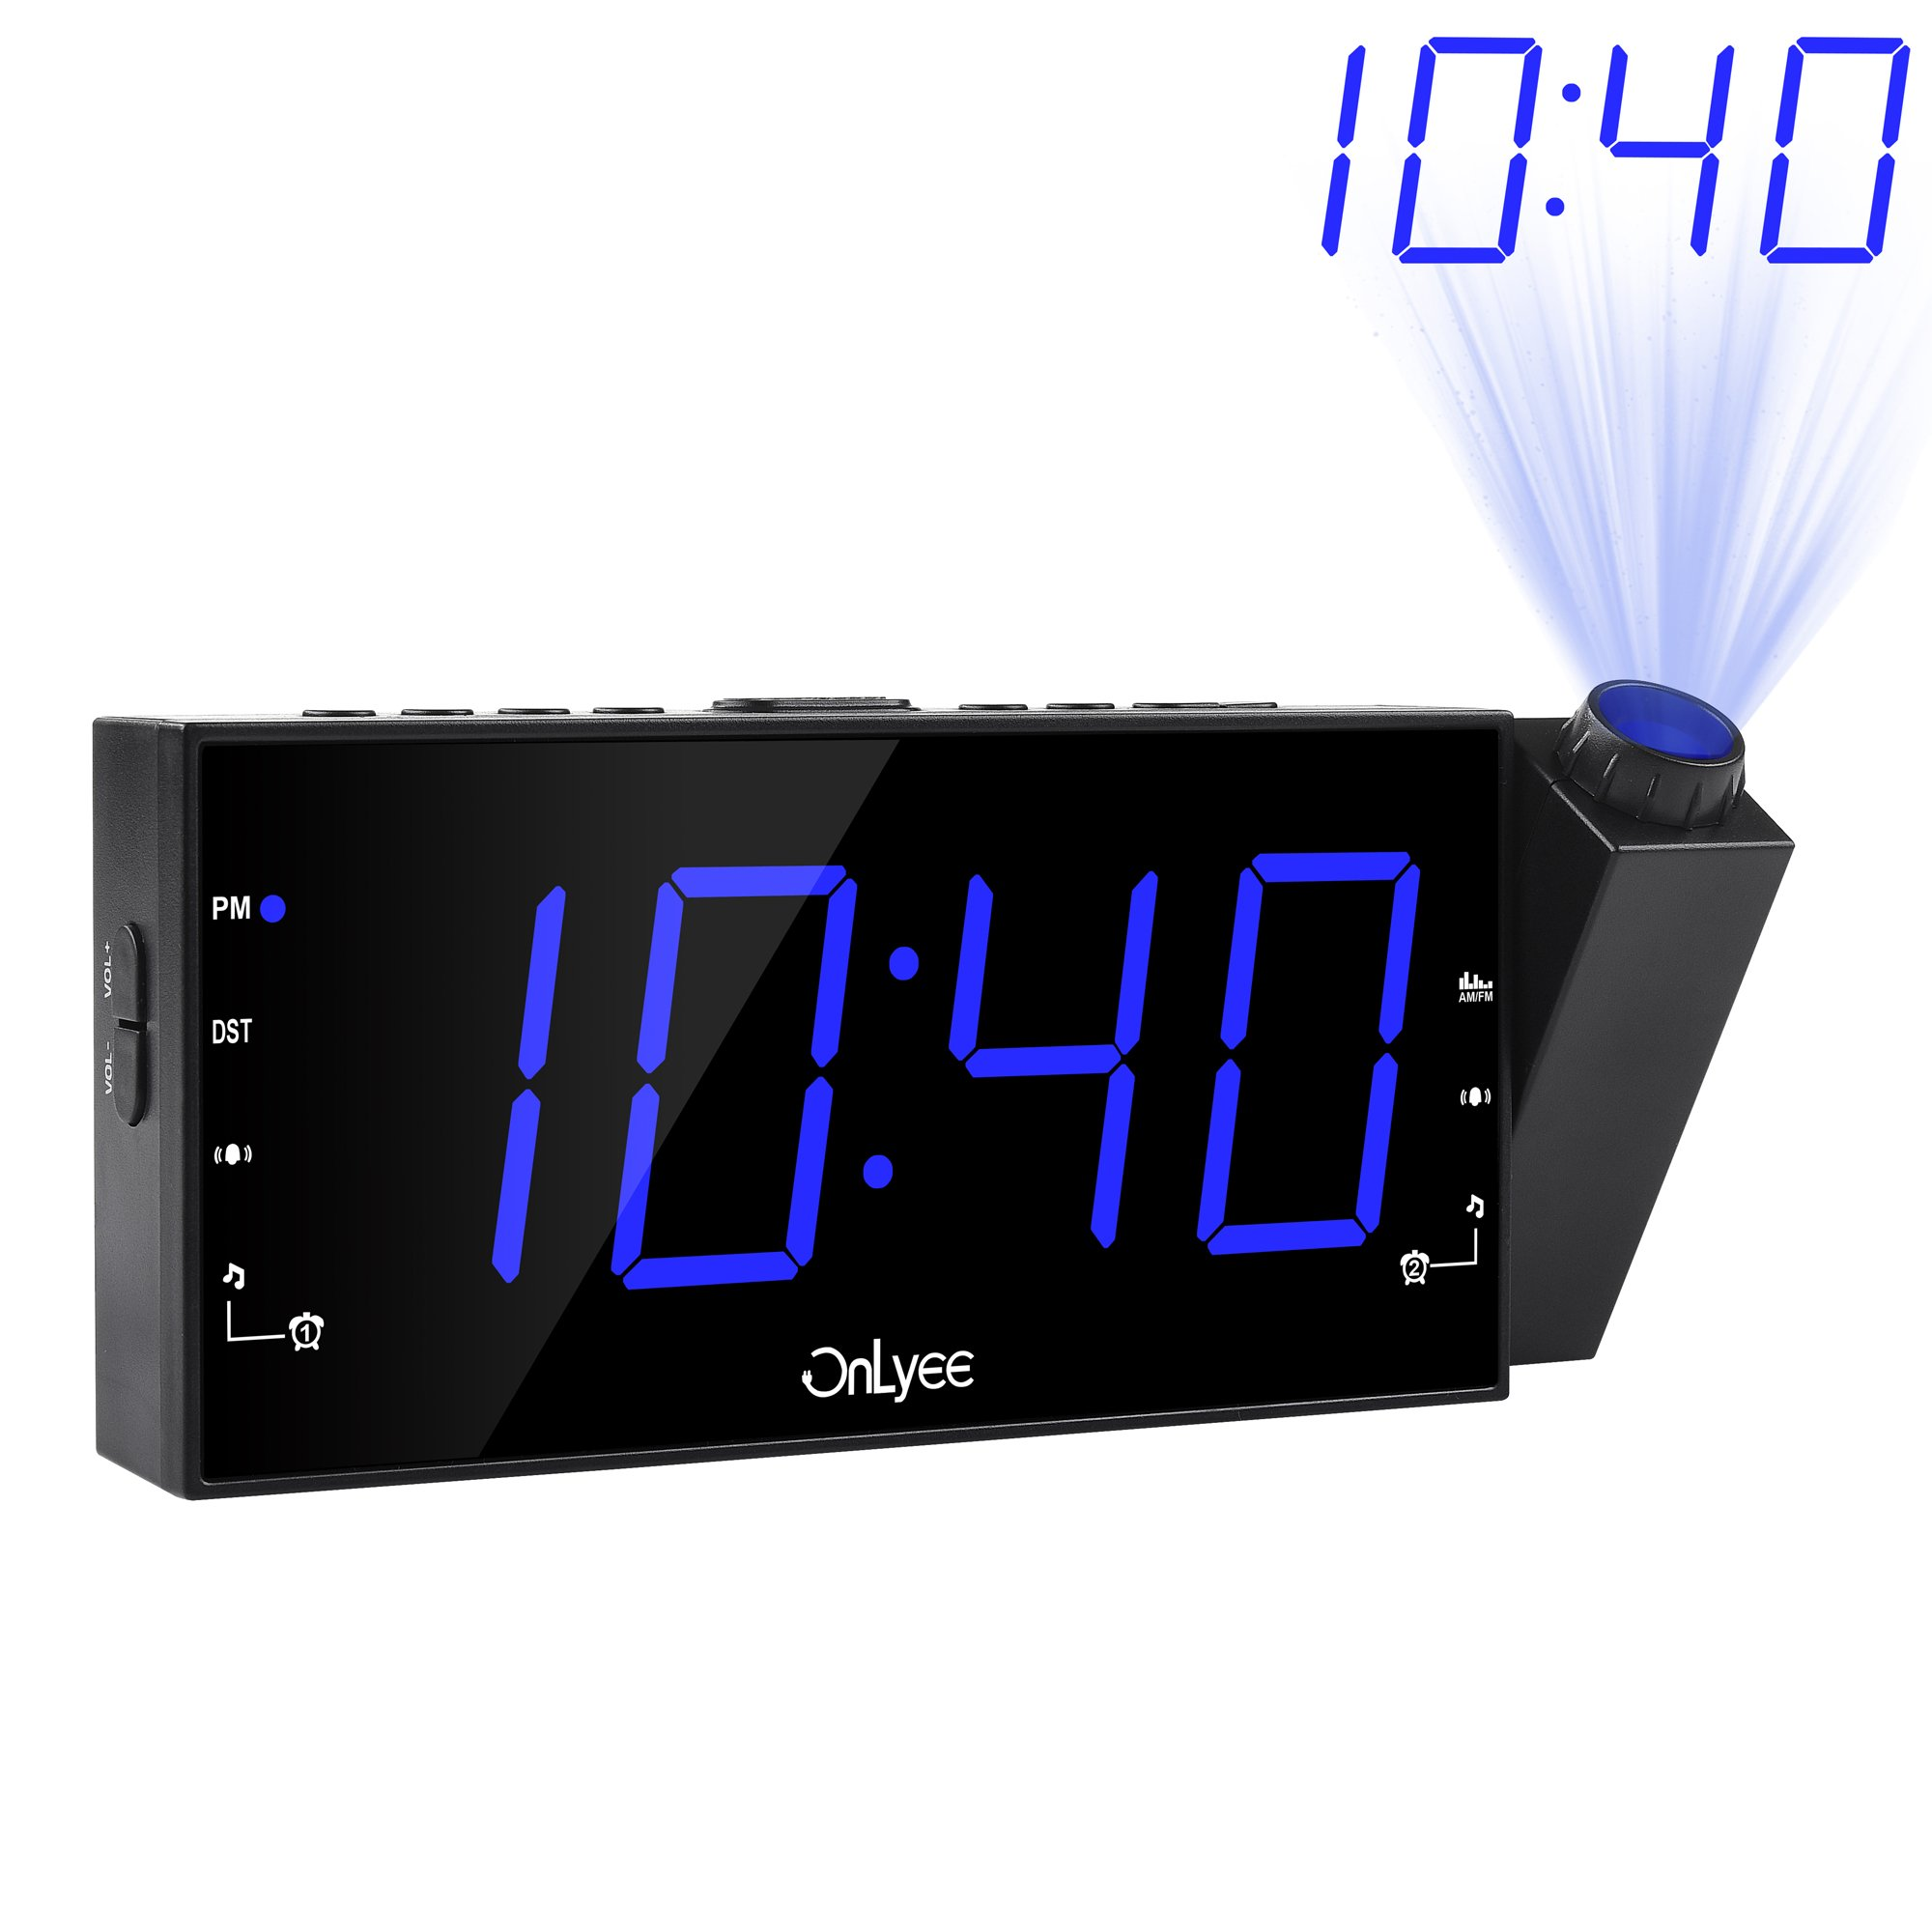 "OnLyee AM FM Radio Alarm Clock, Projection Ceiling Wall Clock, 7"" LED Digital Desk/Shelf Clock with Dimmer, USB Charging, AC Powered and Battery Backup for Bedroom, Kitchen, Kids by OnLyee"